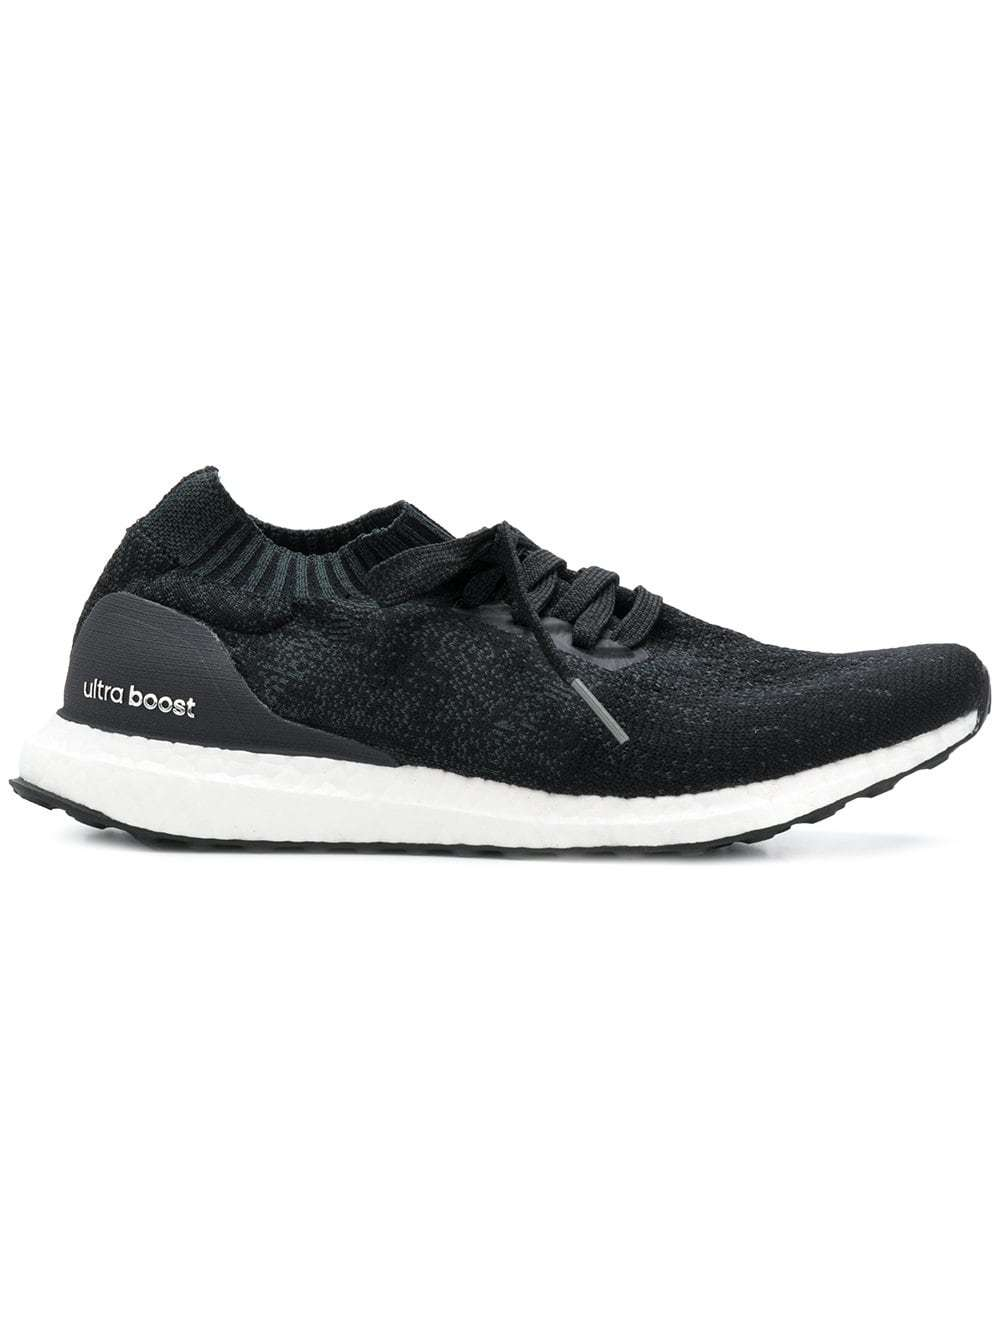 new style 6858b 0a4e5 Ultraboost Uncaged Sneakers